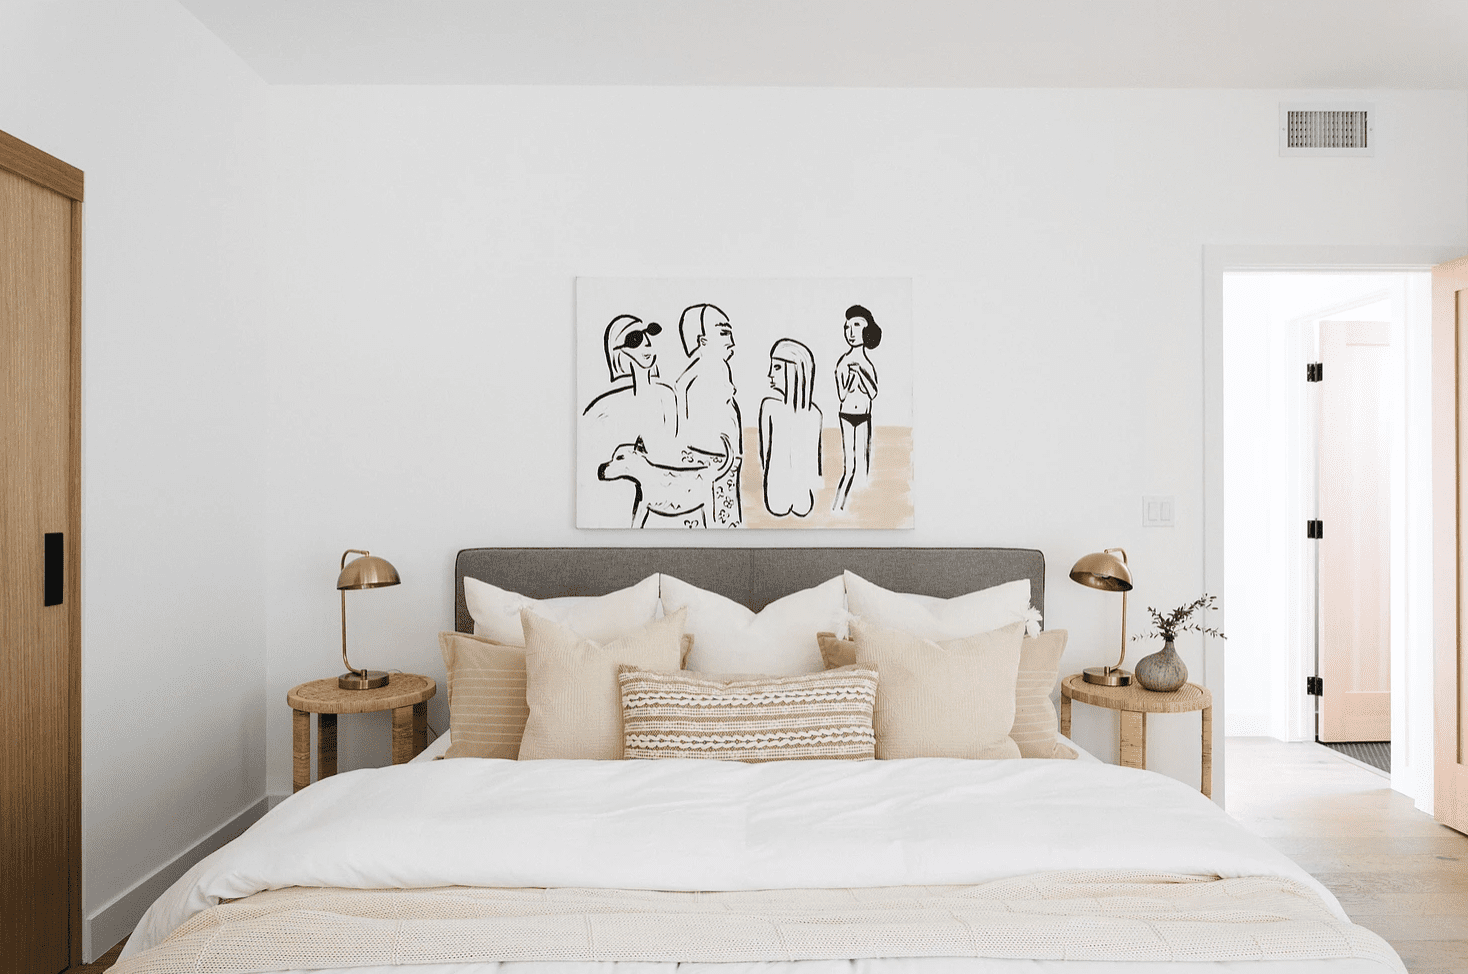 A bed with beige and white bedding and matching art